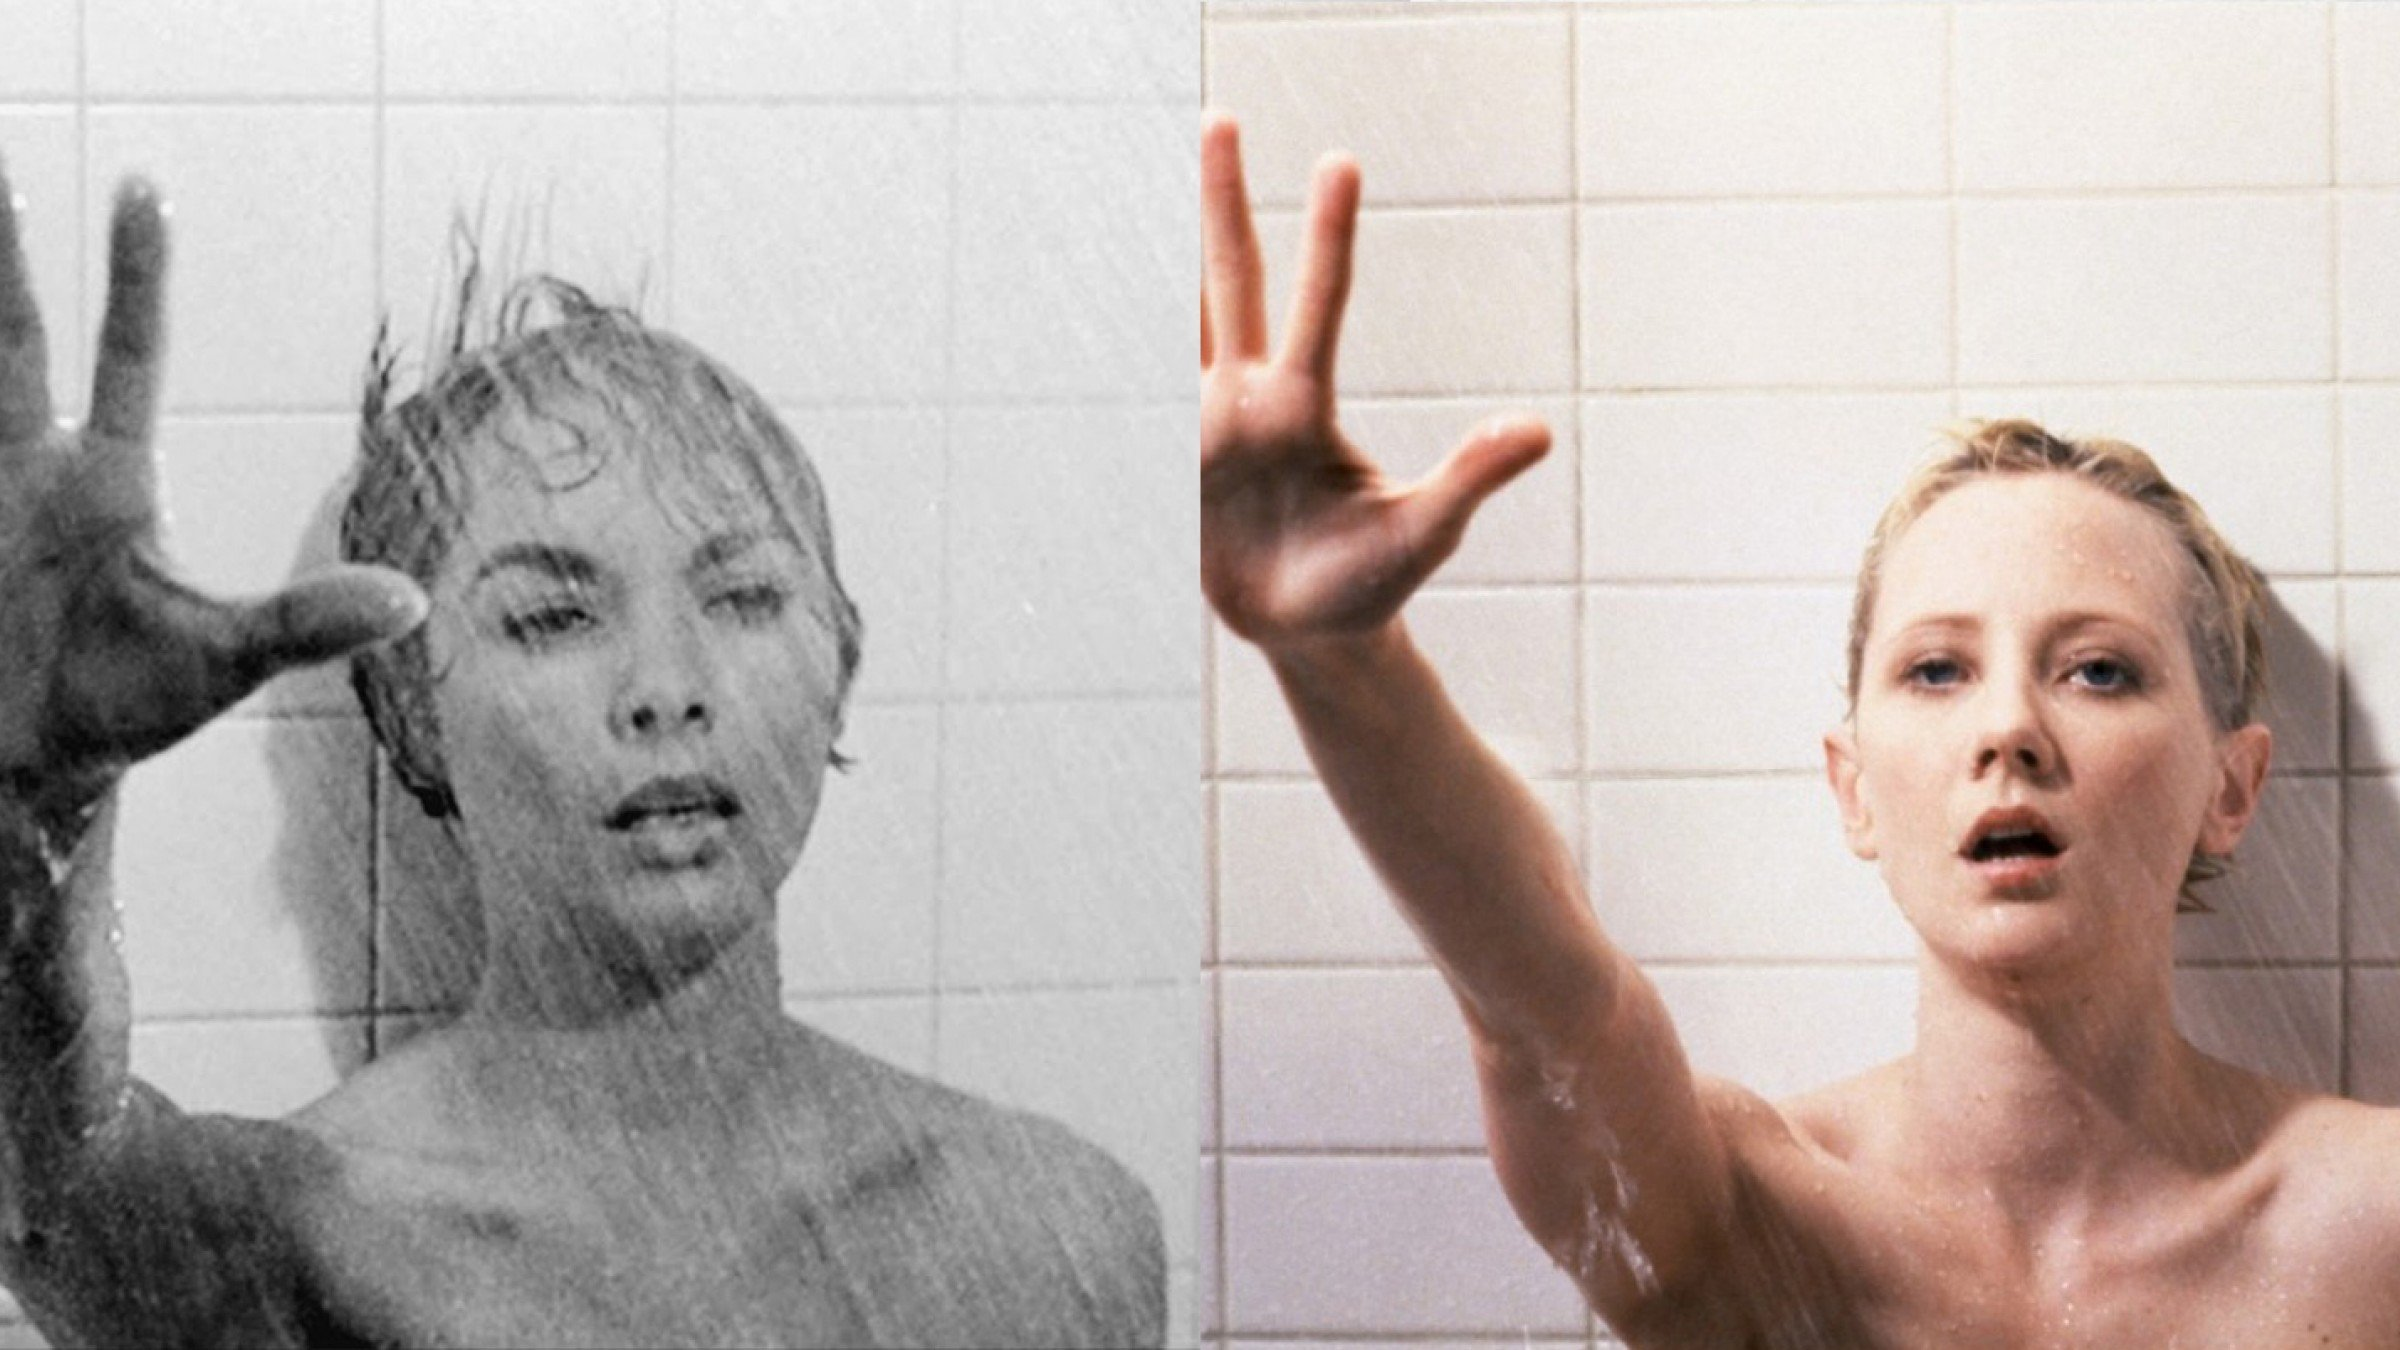 From 'Psycho' to 'The Departed': A Side-by-Side Comparison of Original Movies & Their Remakes